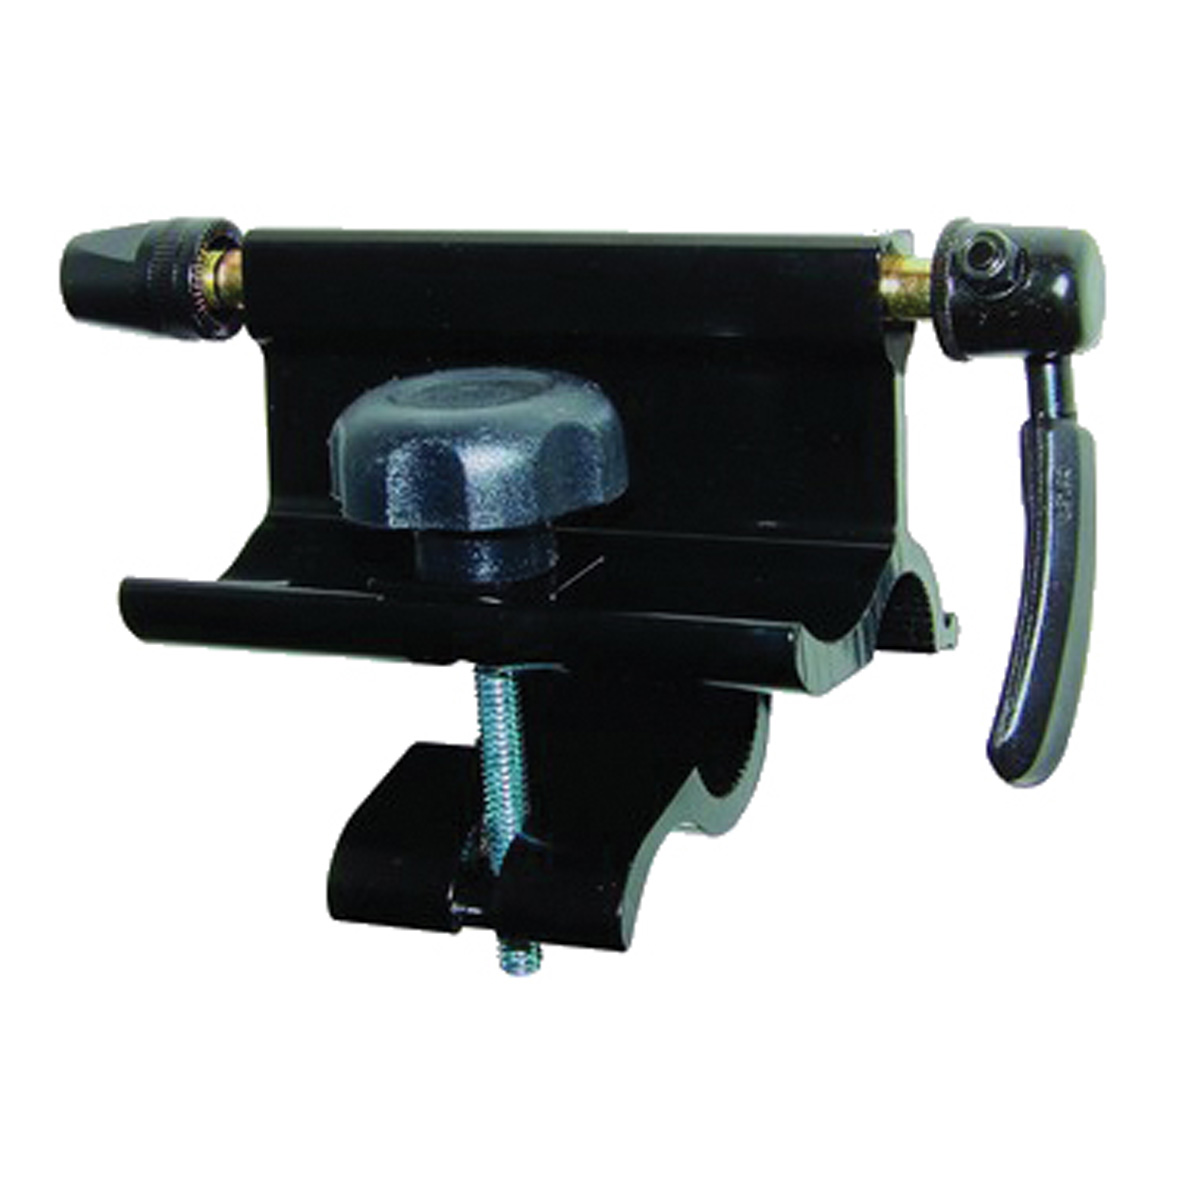 Summit Cargo Bar QR Bicycle Hitch Additional Mount - CB-630A